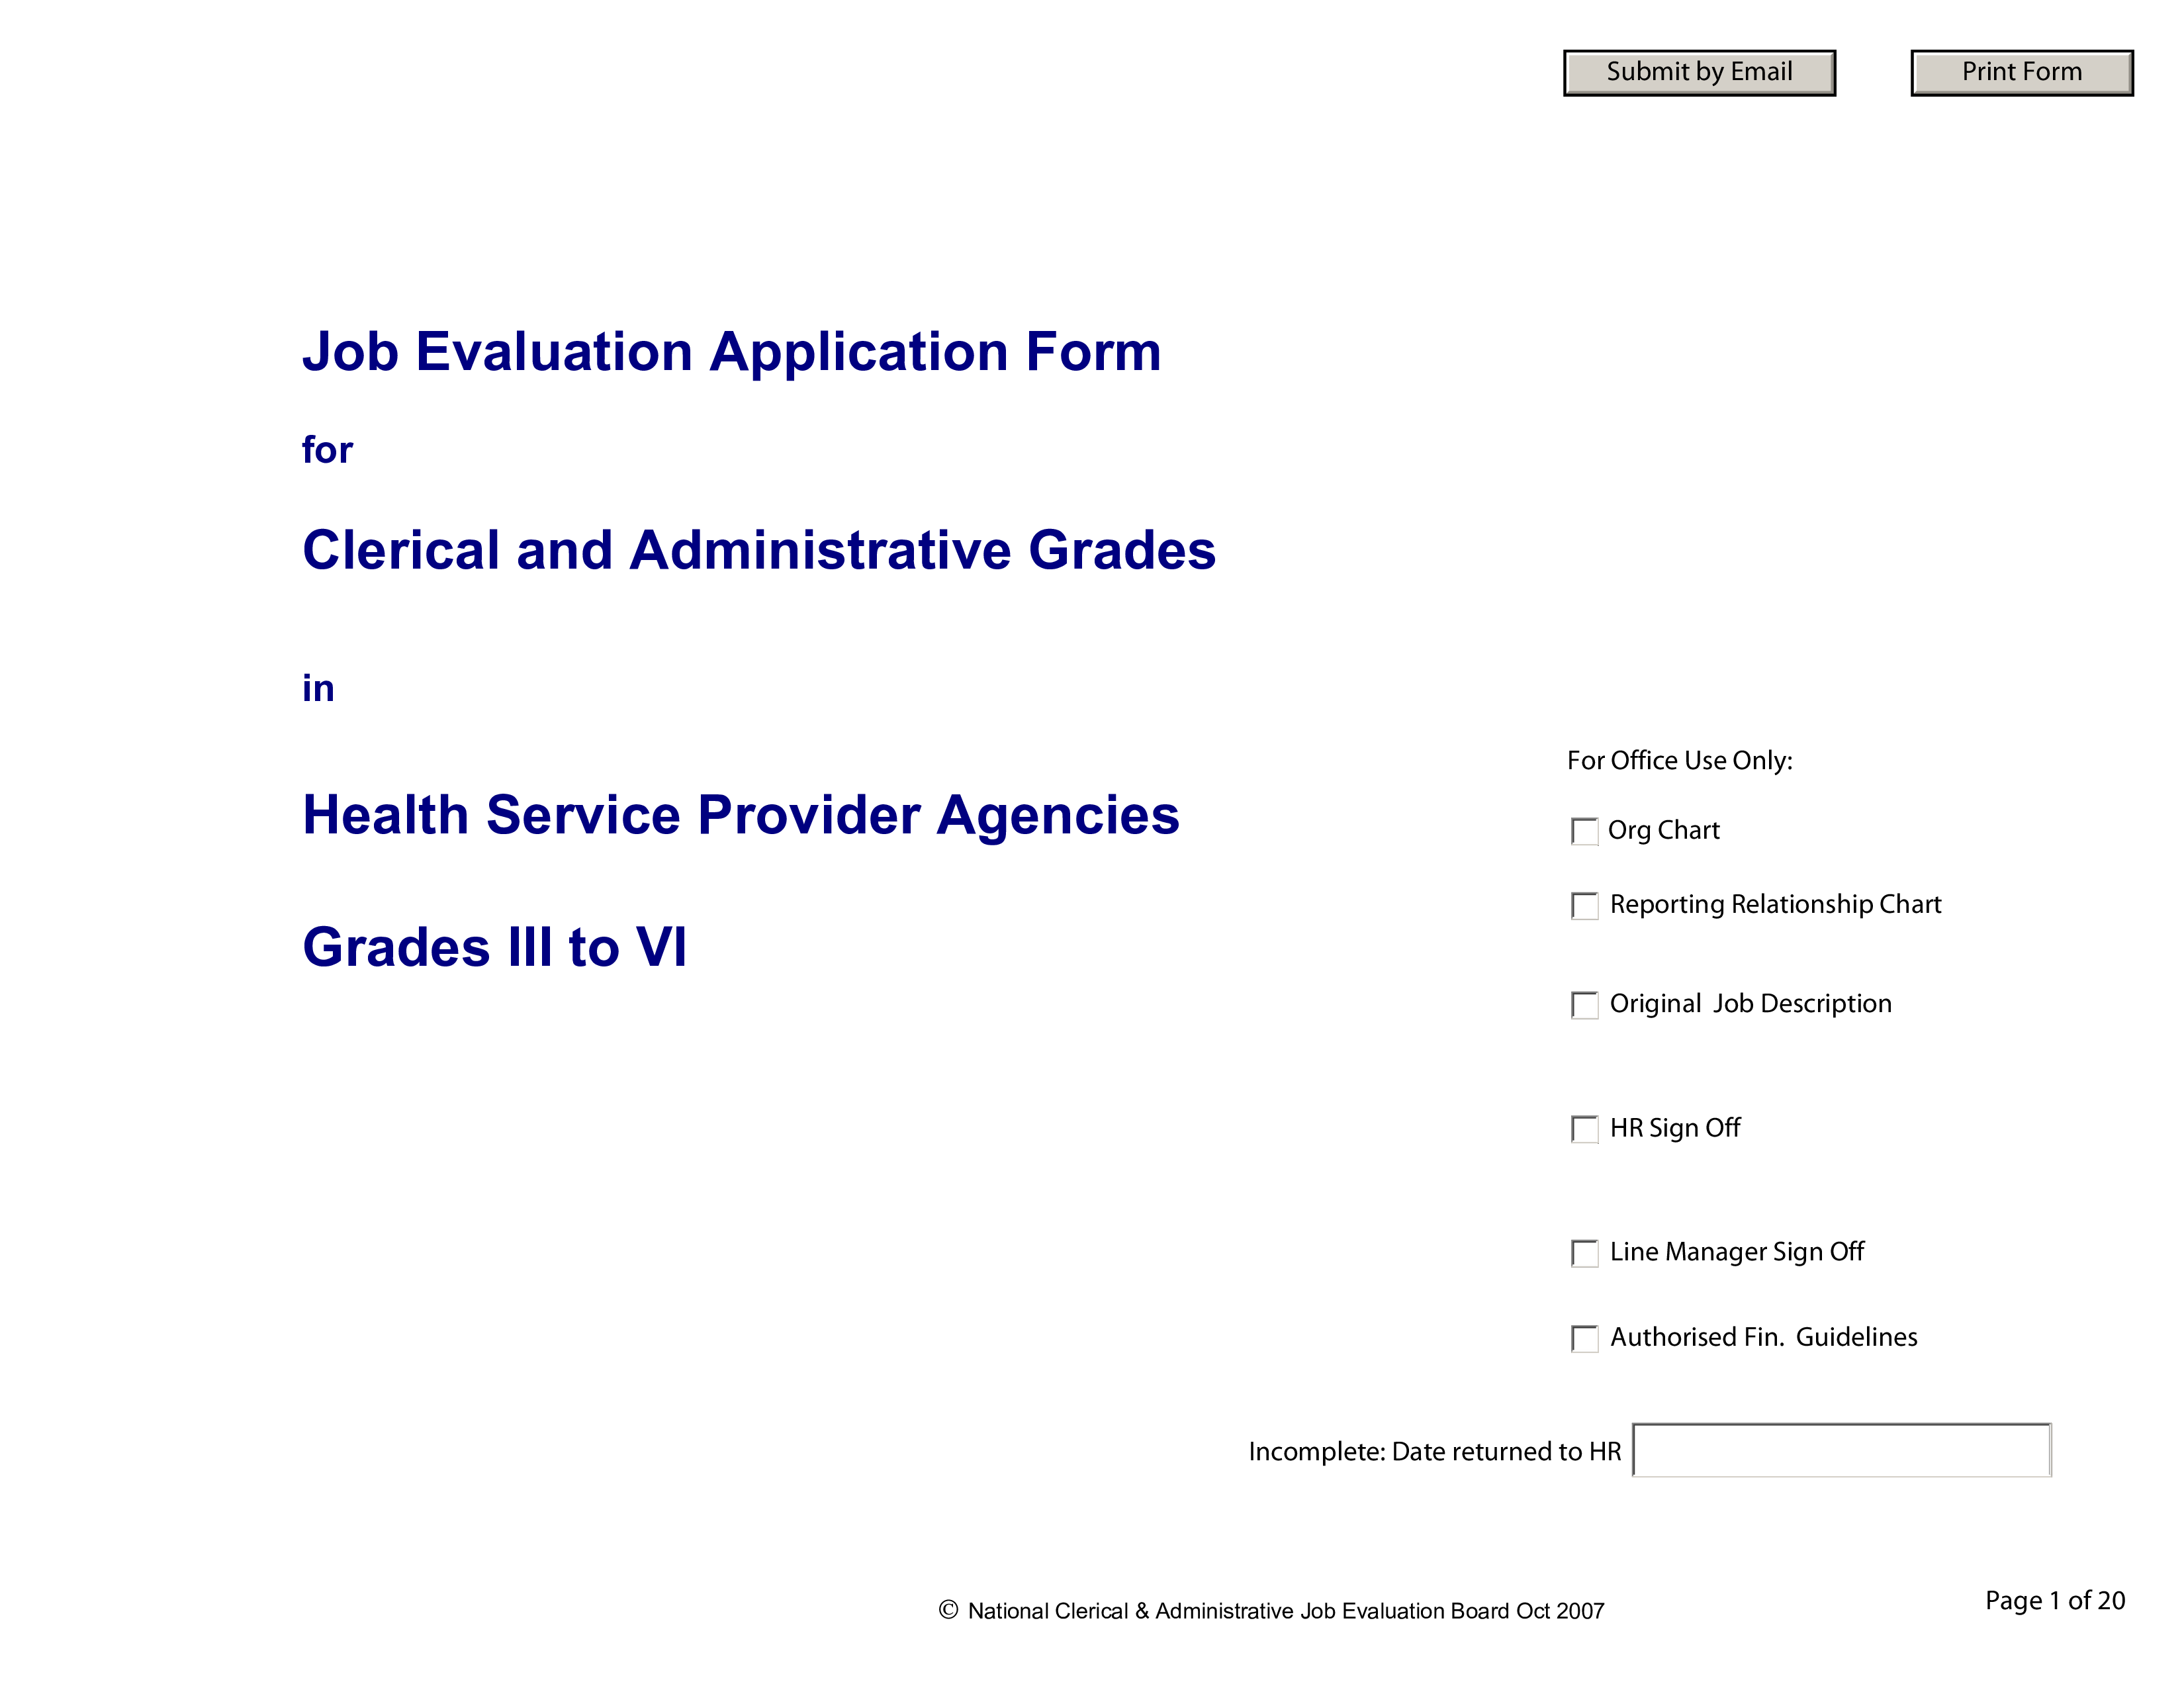 Free Job Evaluation Application Form Templates At